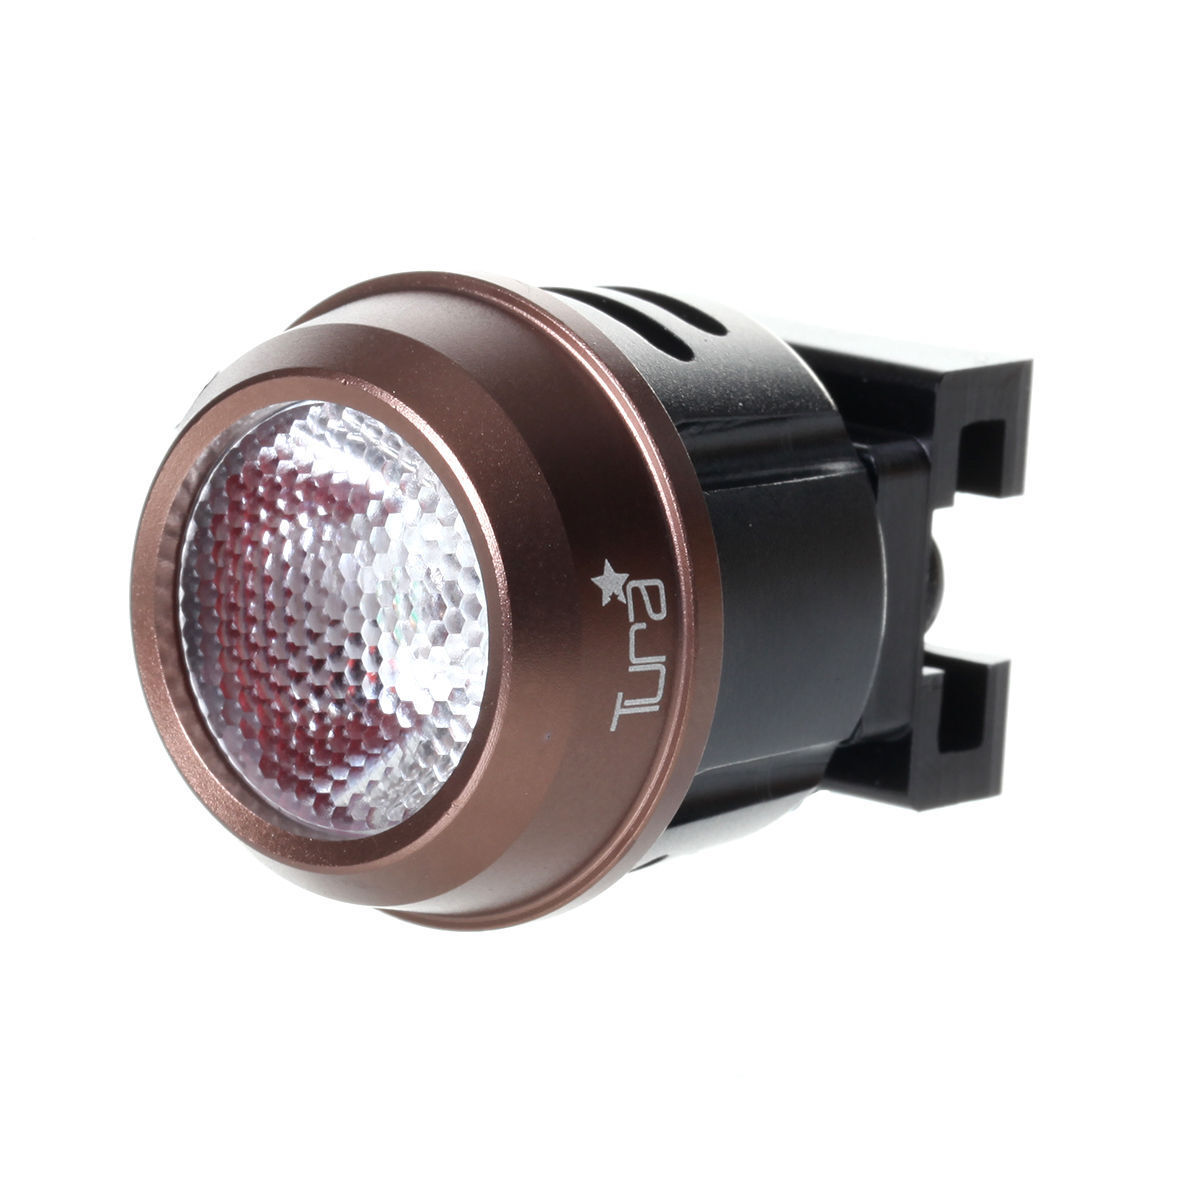 TURA SPRITE 150 LUMEN HIGH POWER LED REAR BICYCLE MTB ROAD BIKE LIGHT POWERFUL